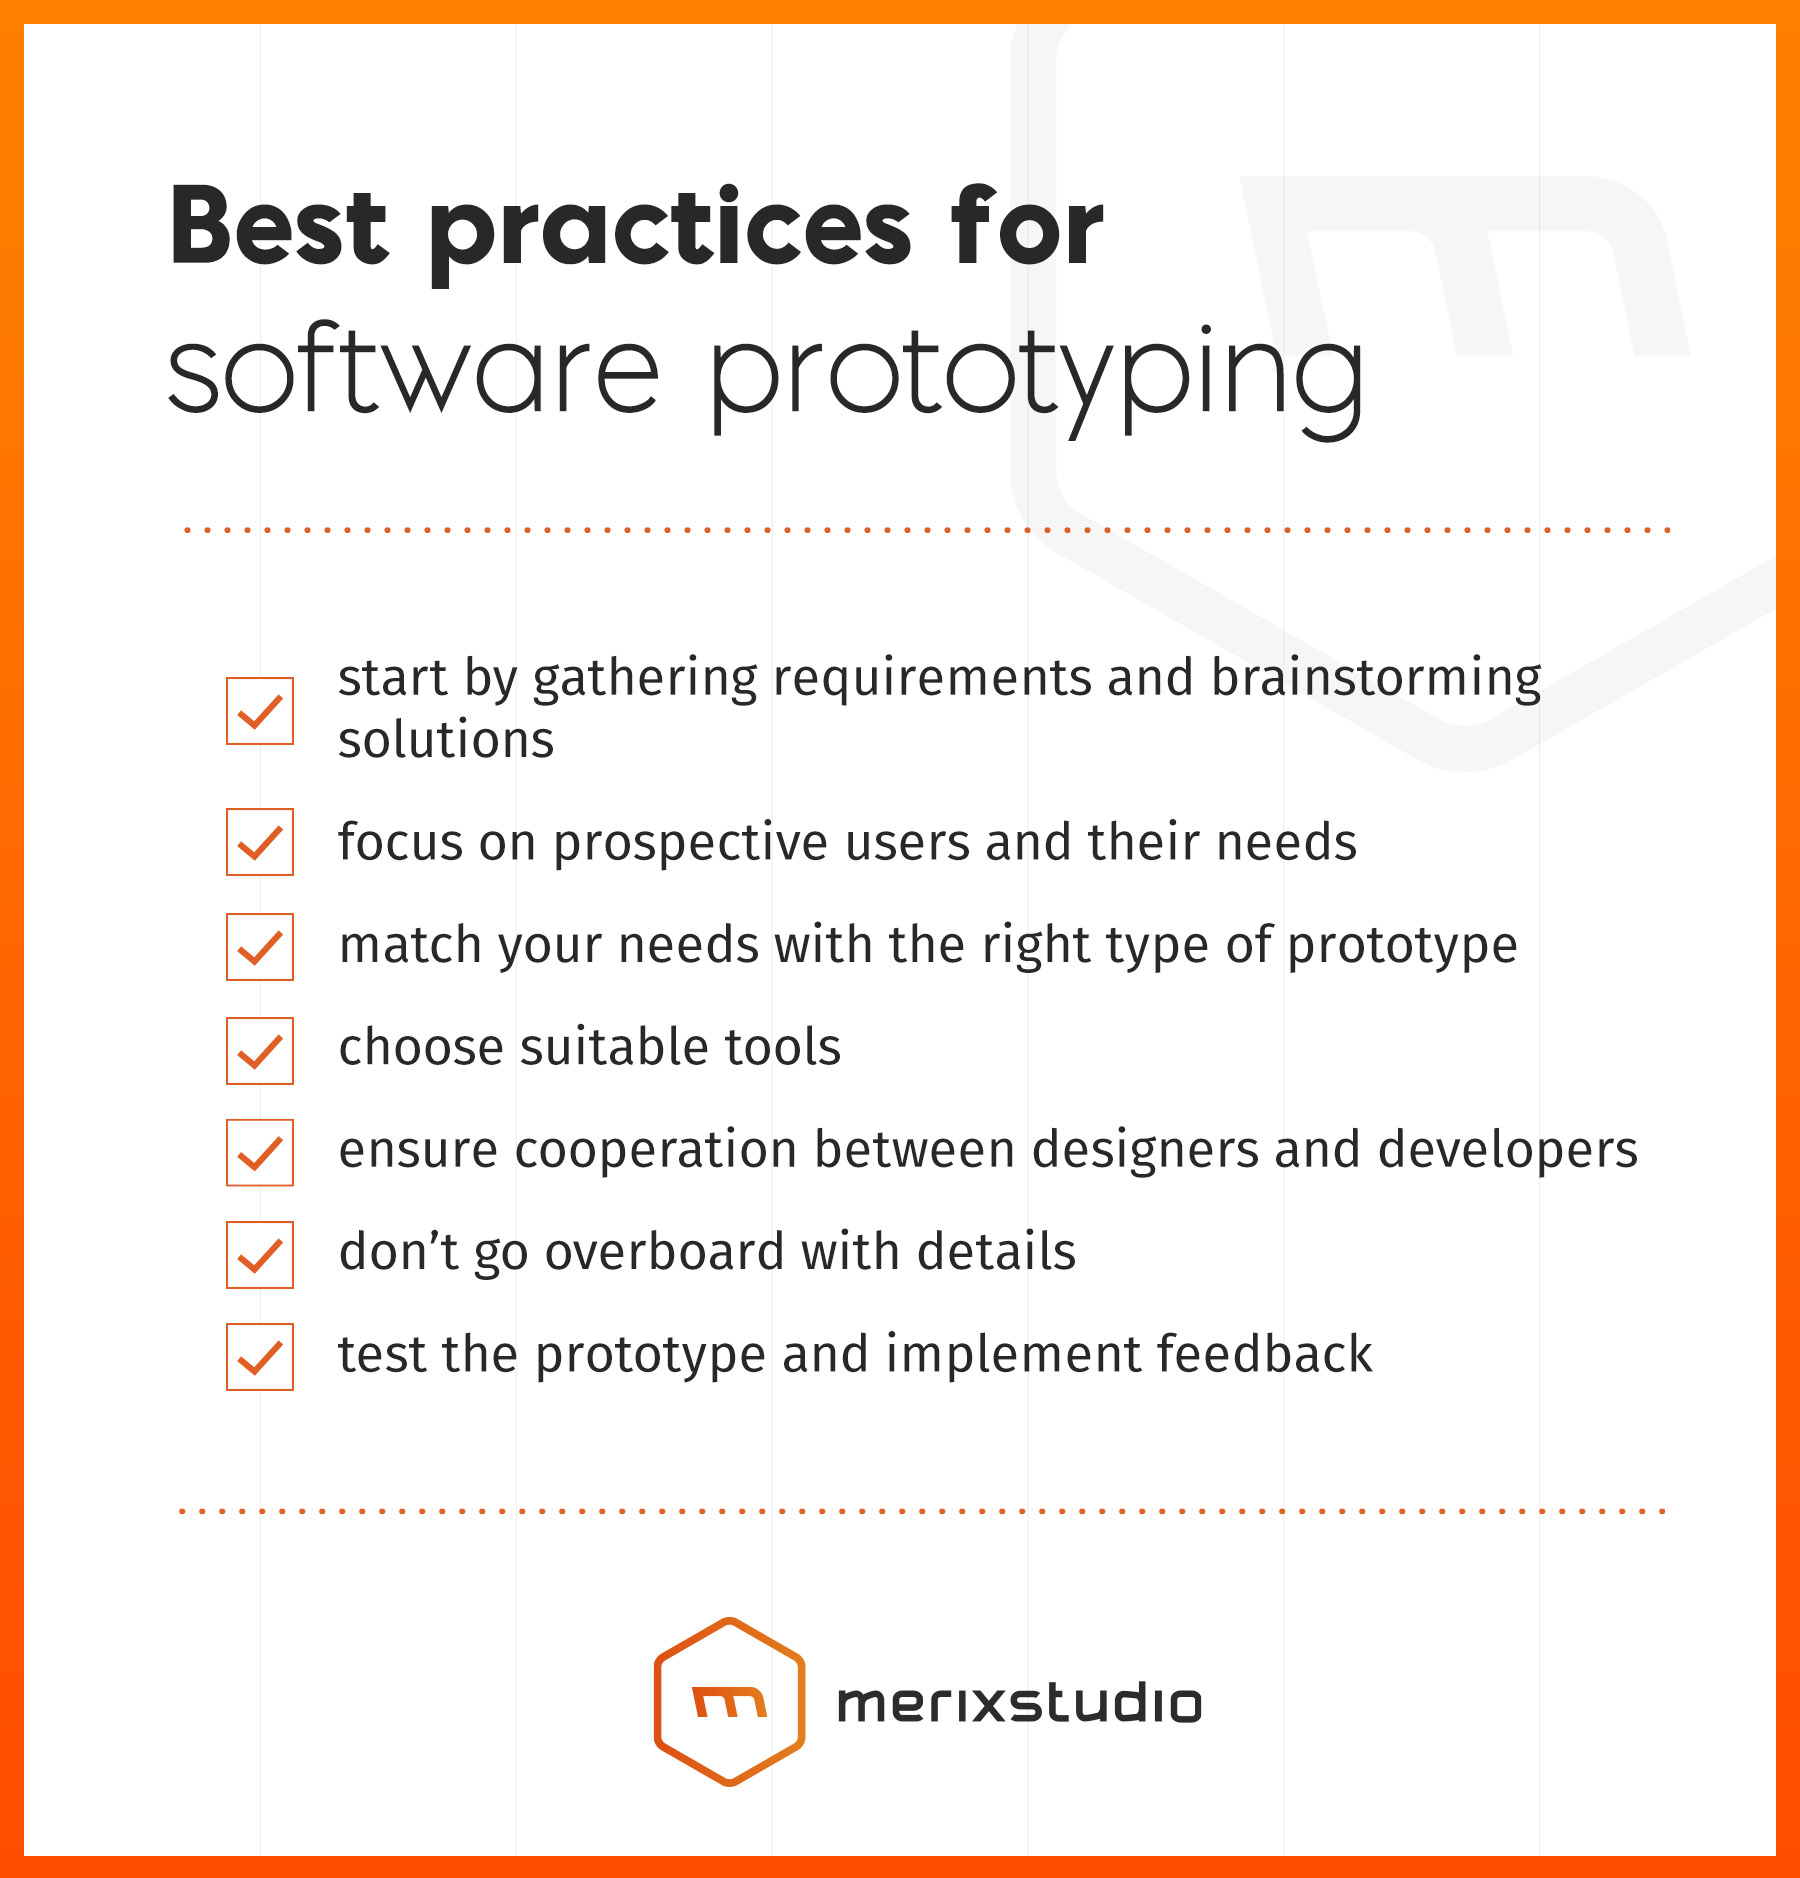 Best practices for software prototyping